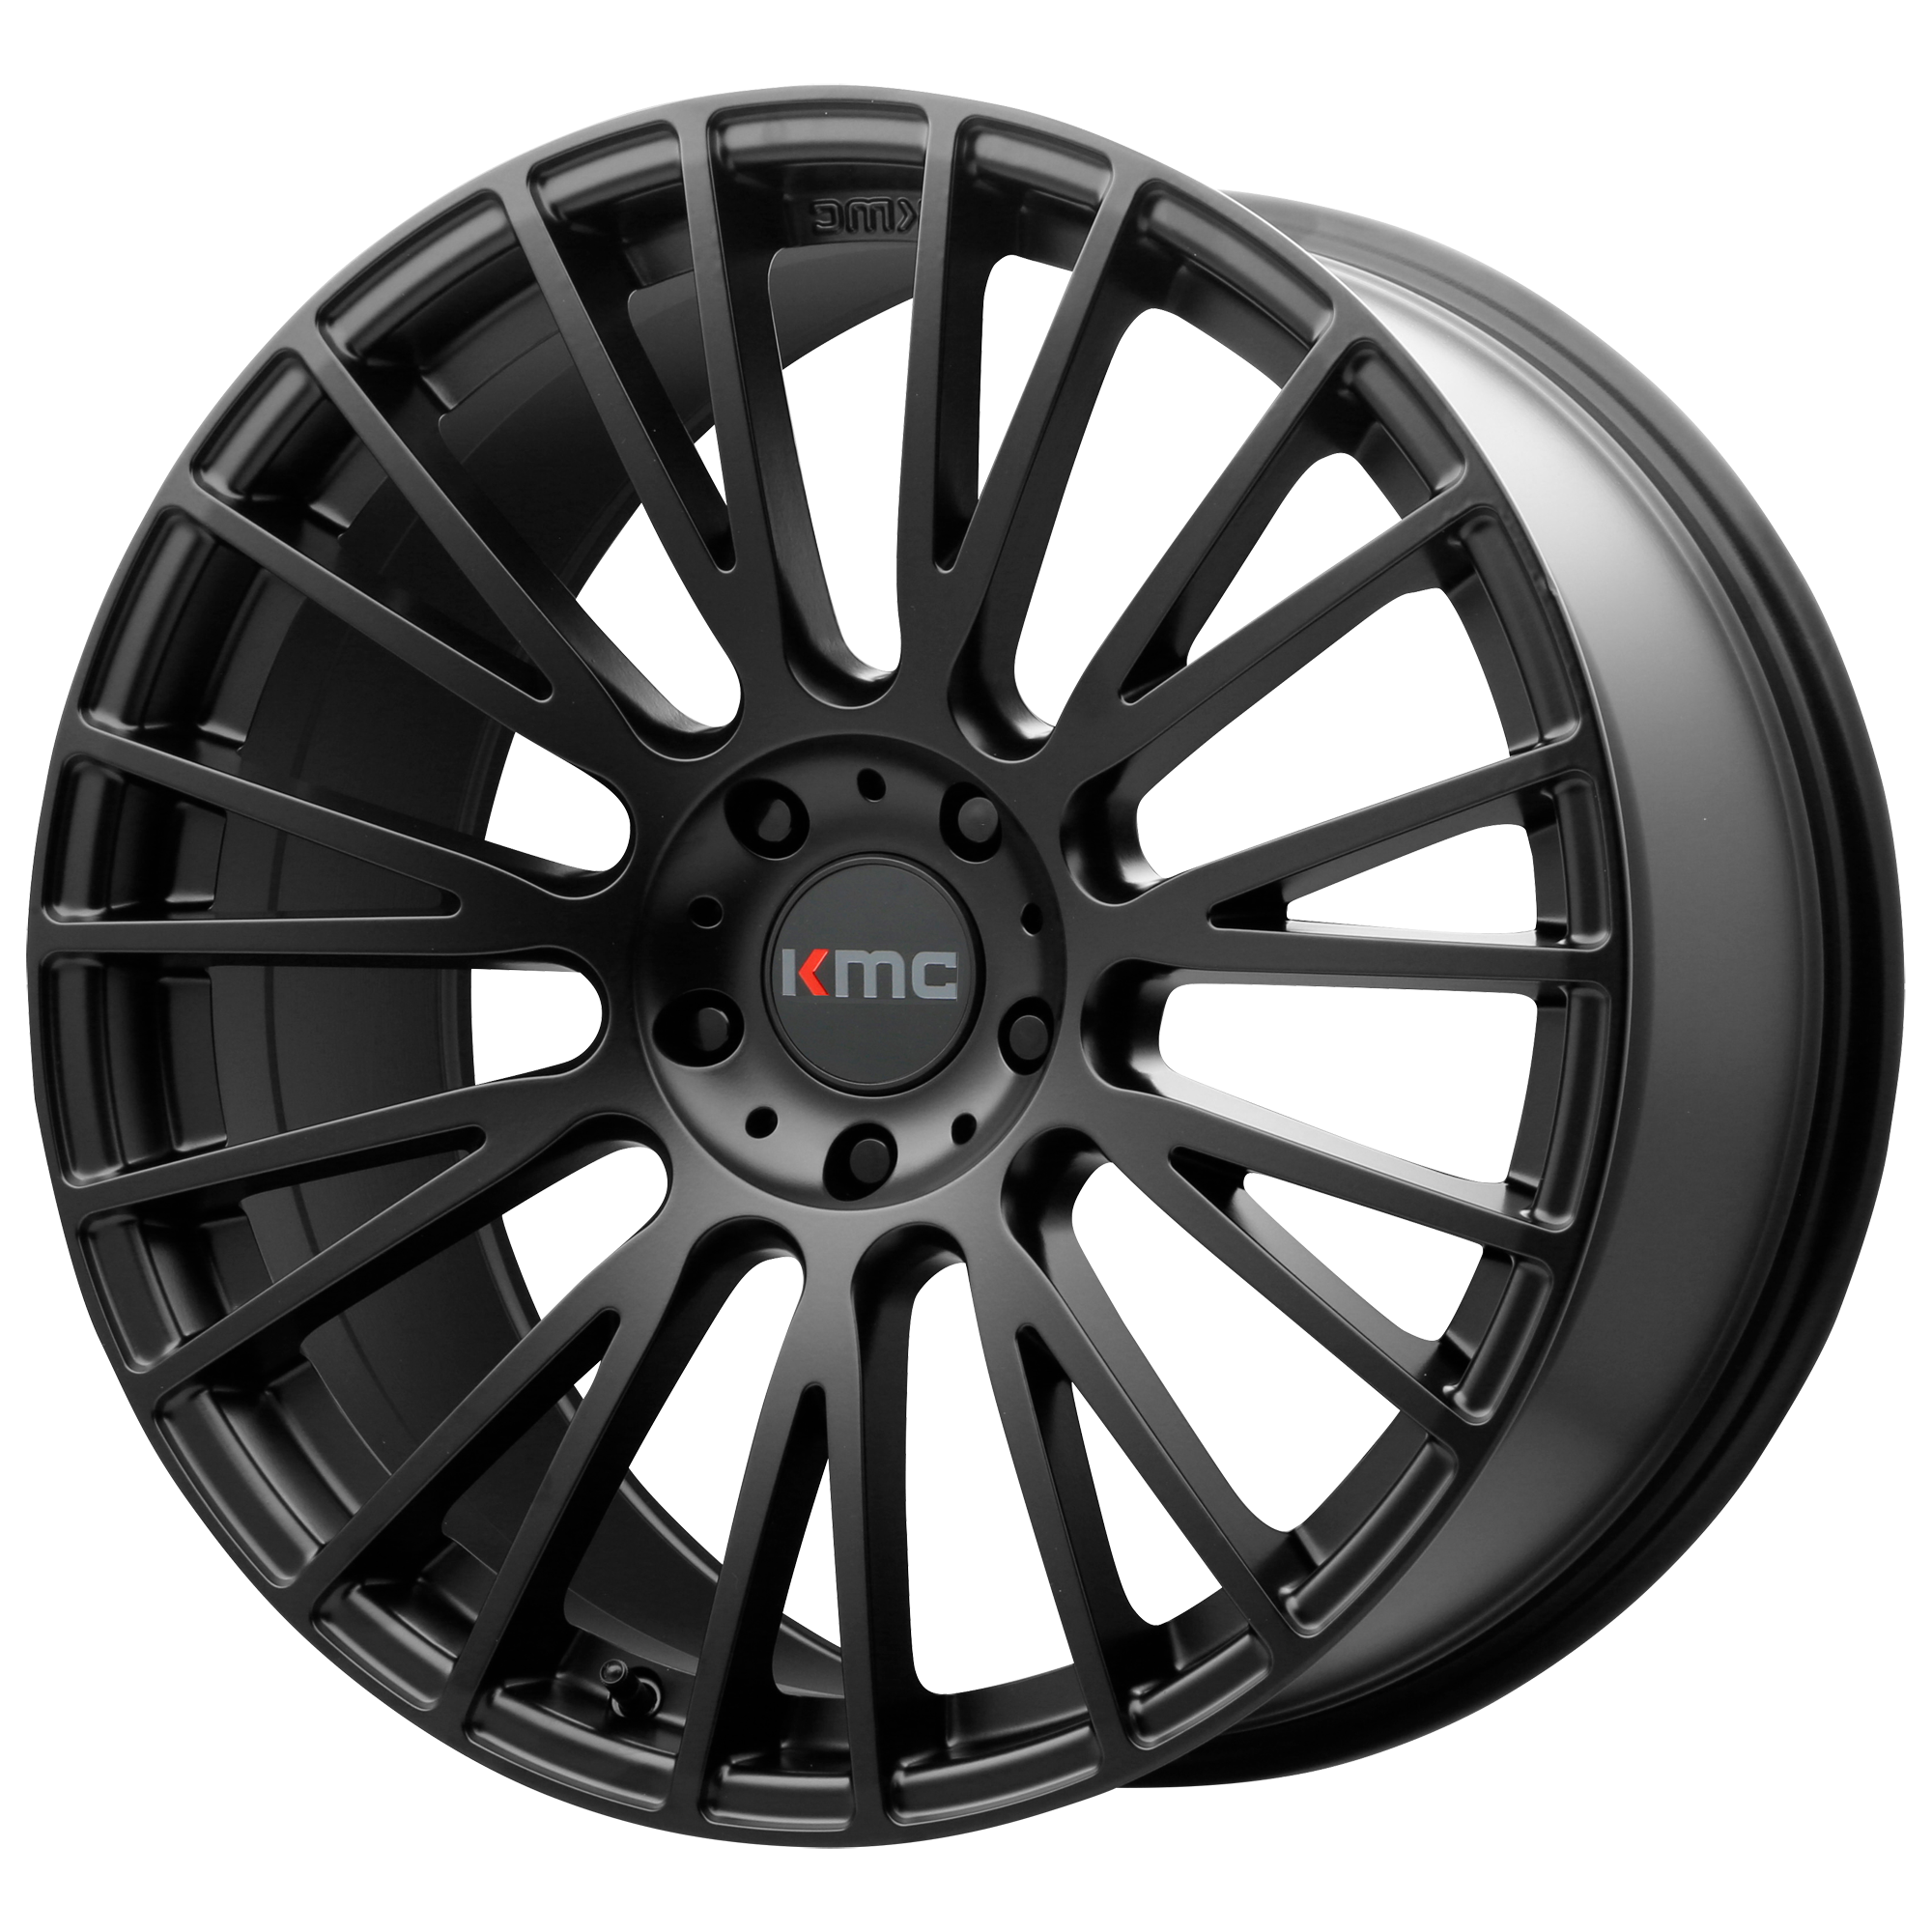 KMC Wheels IMPACT Satin Black